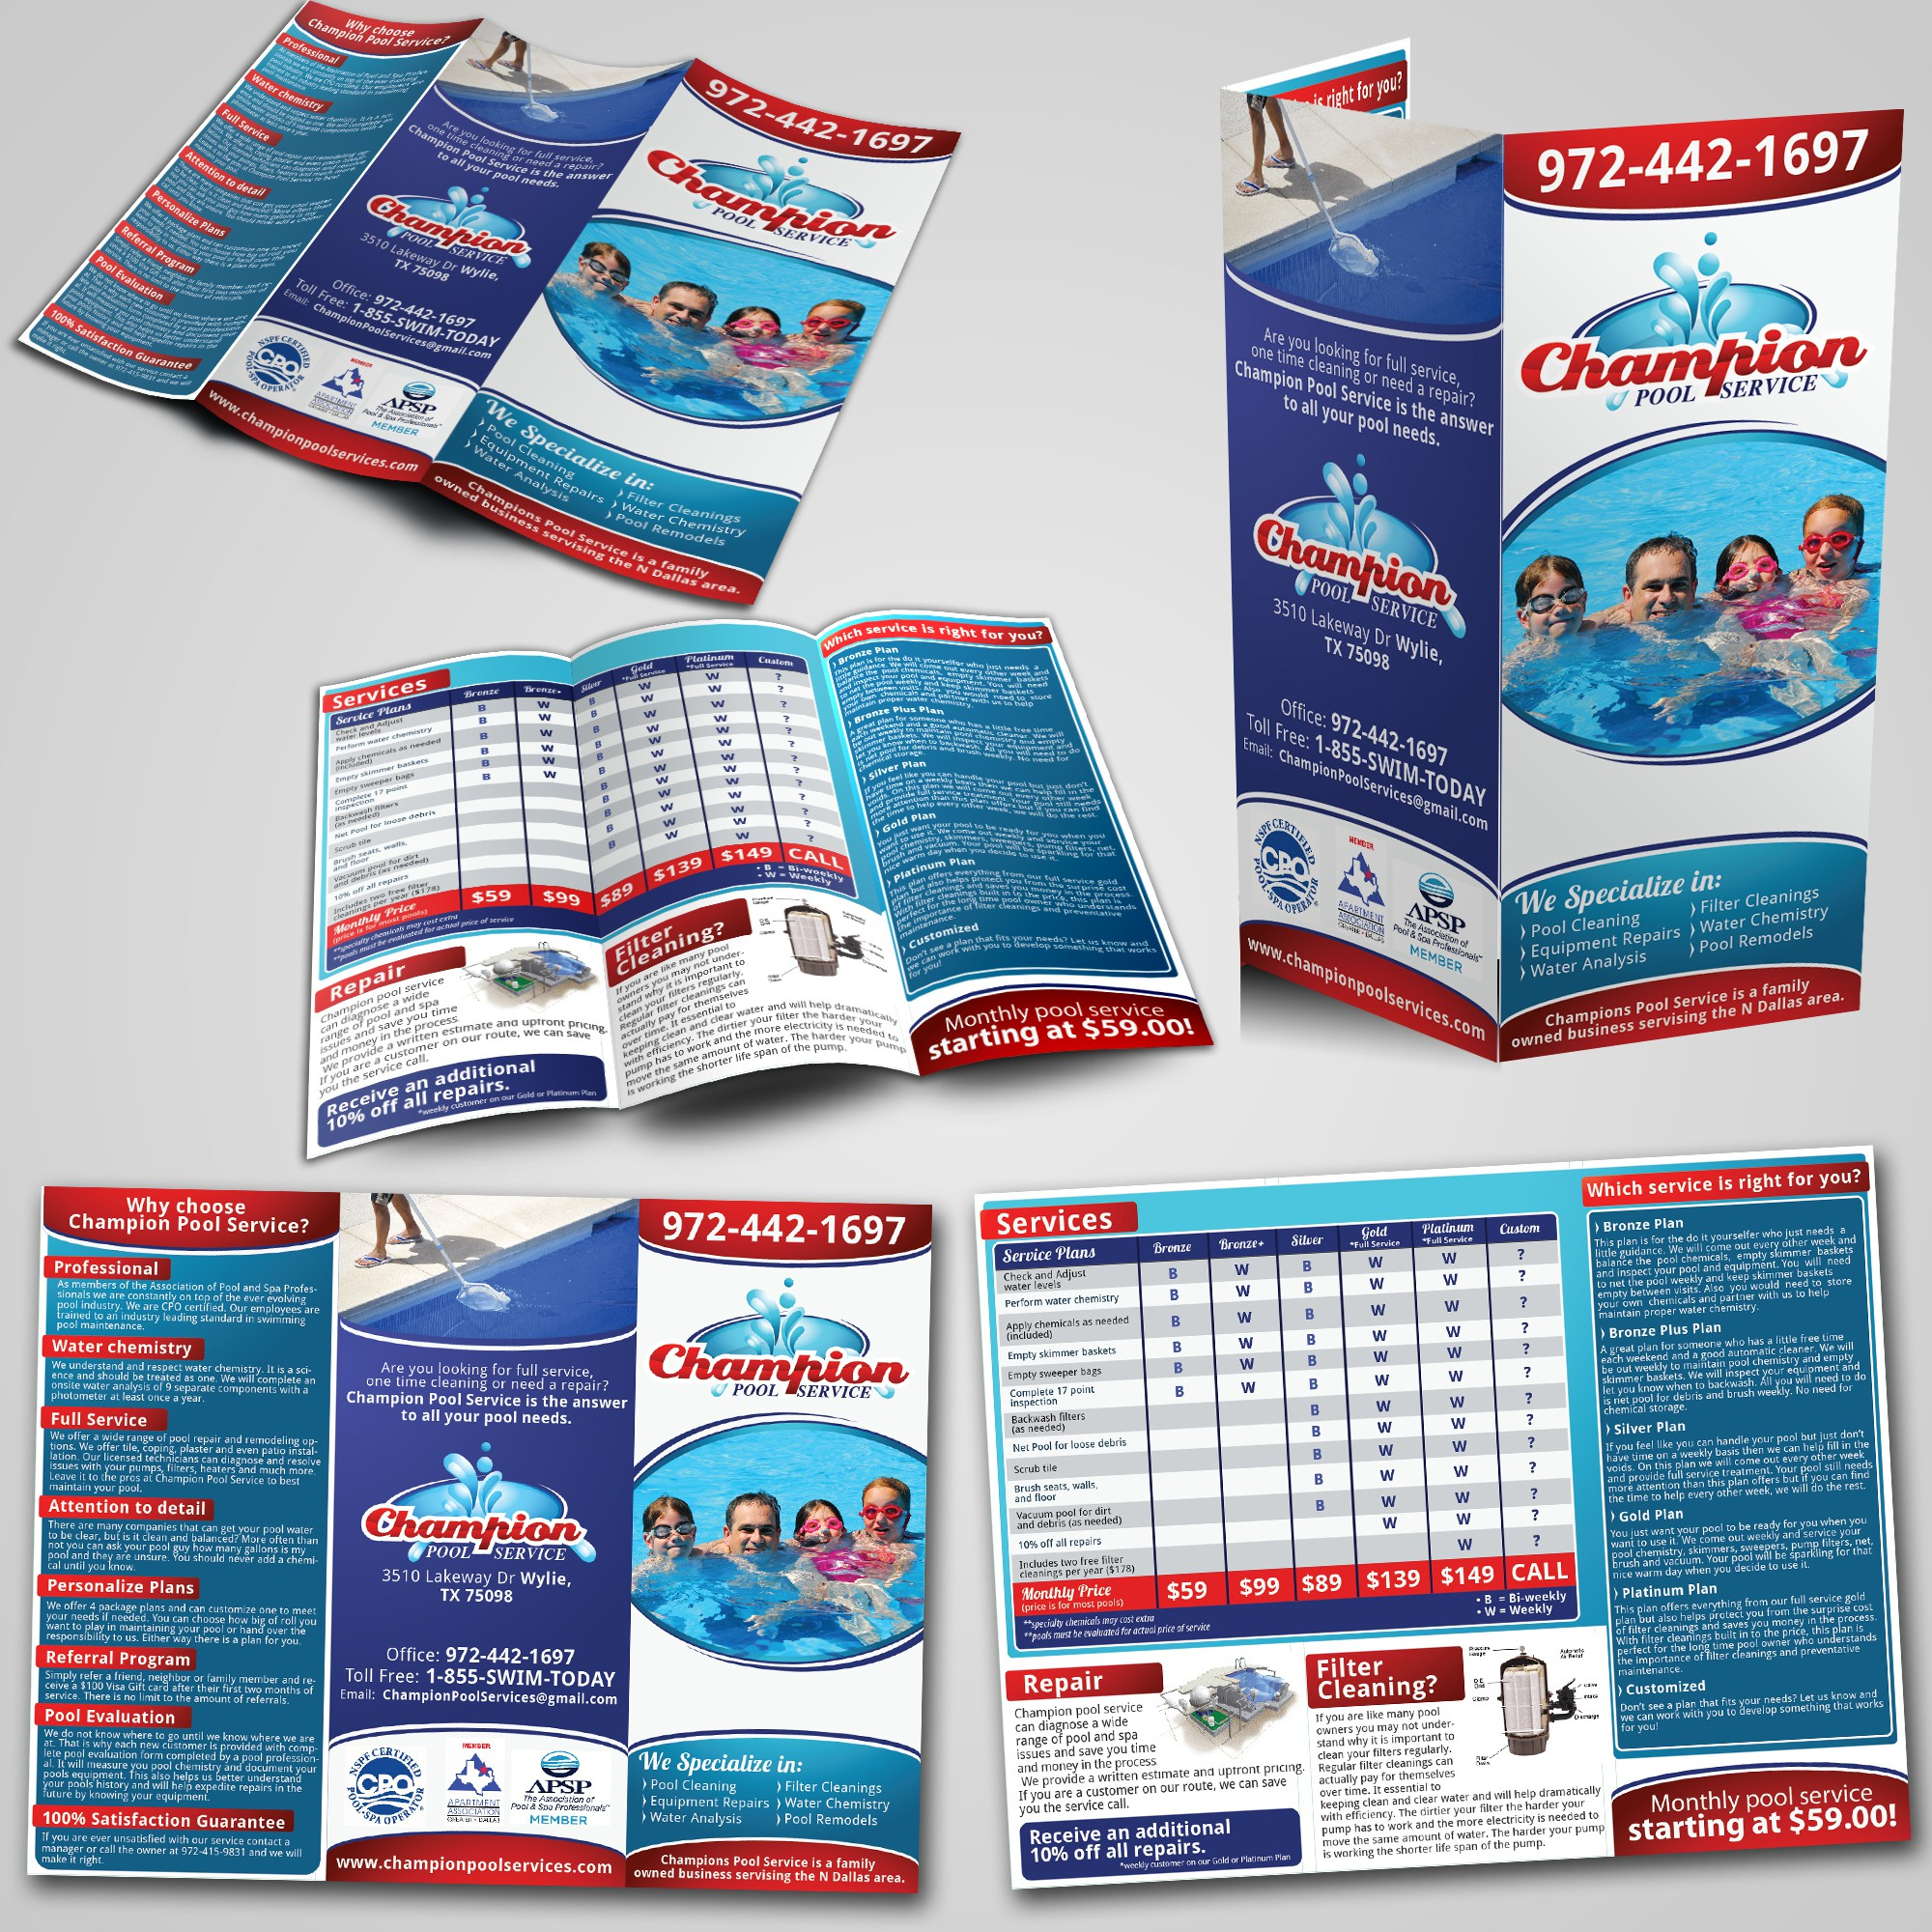 Help Champion Pool Service with a new print or packaging design